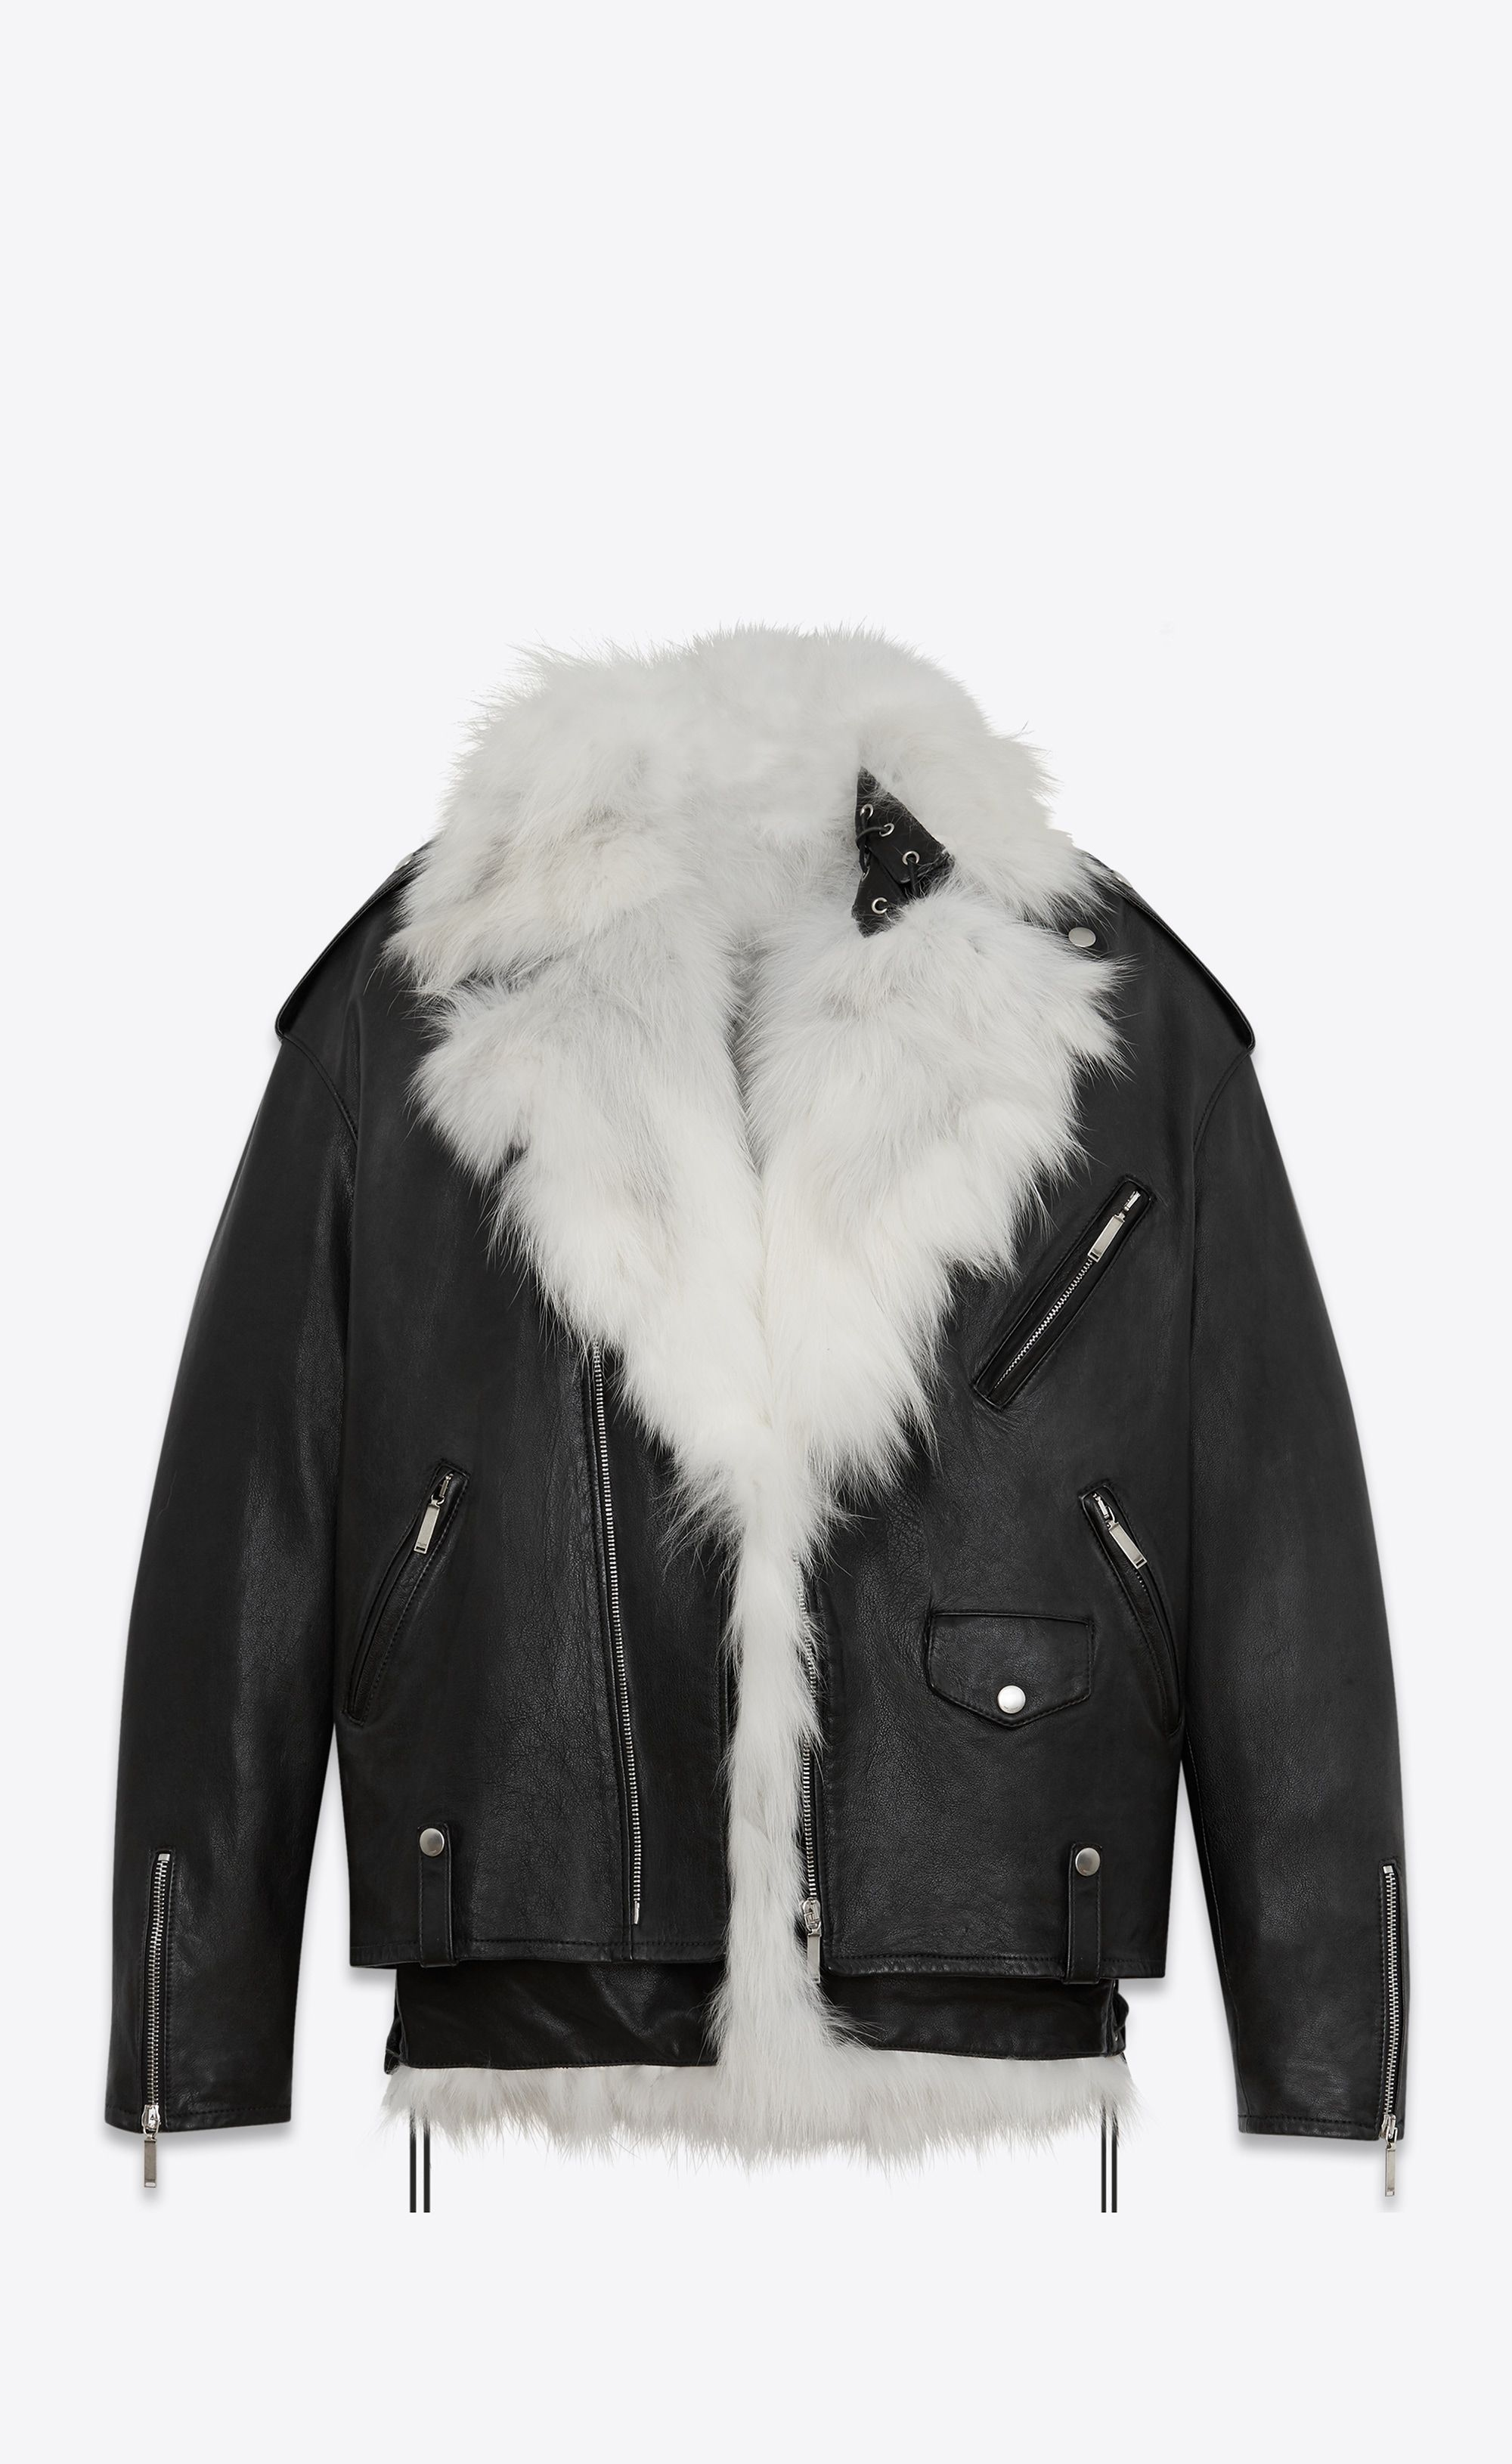 dea1f56ac31  Saint Laurent - Oversized motorcycle jacket in black leather with  removable white faux fox fur lining ($9,900)